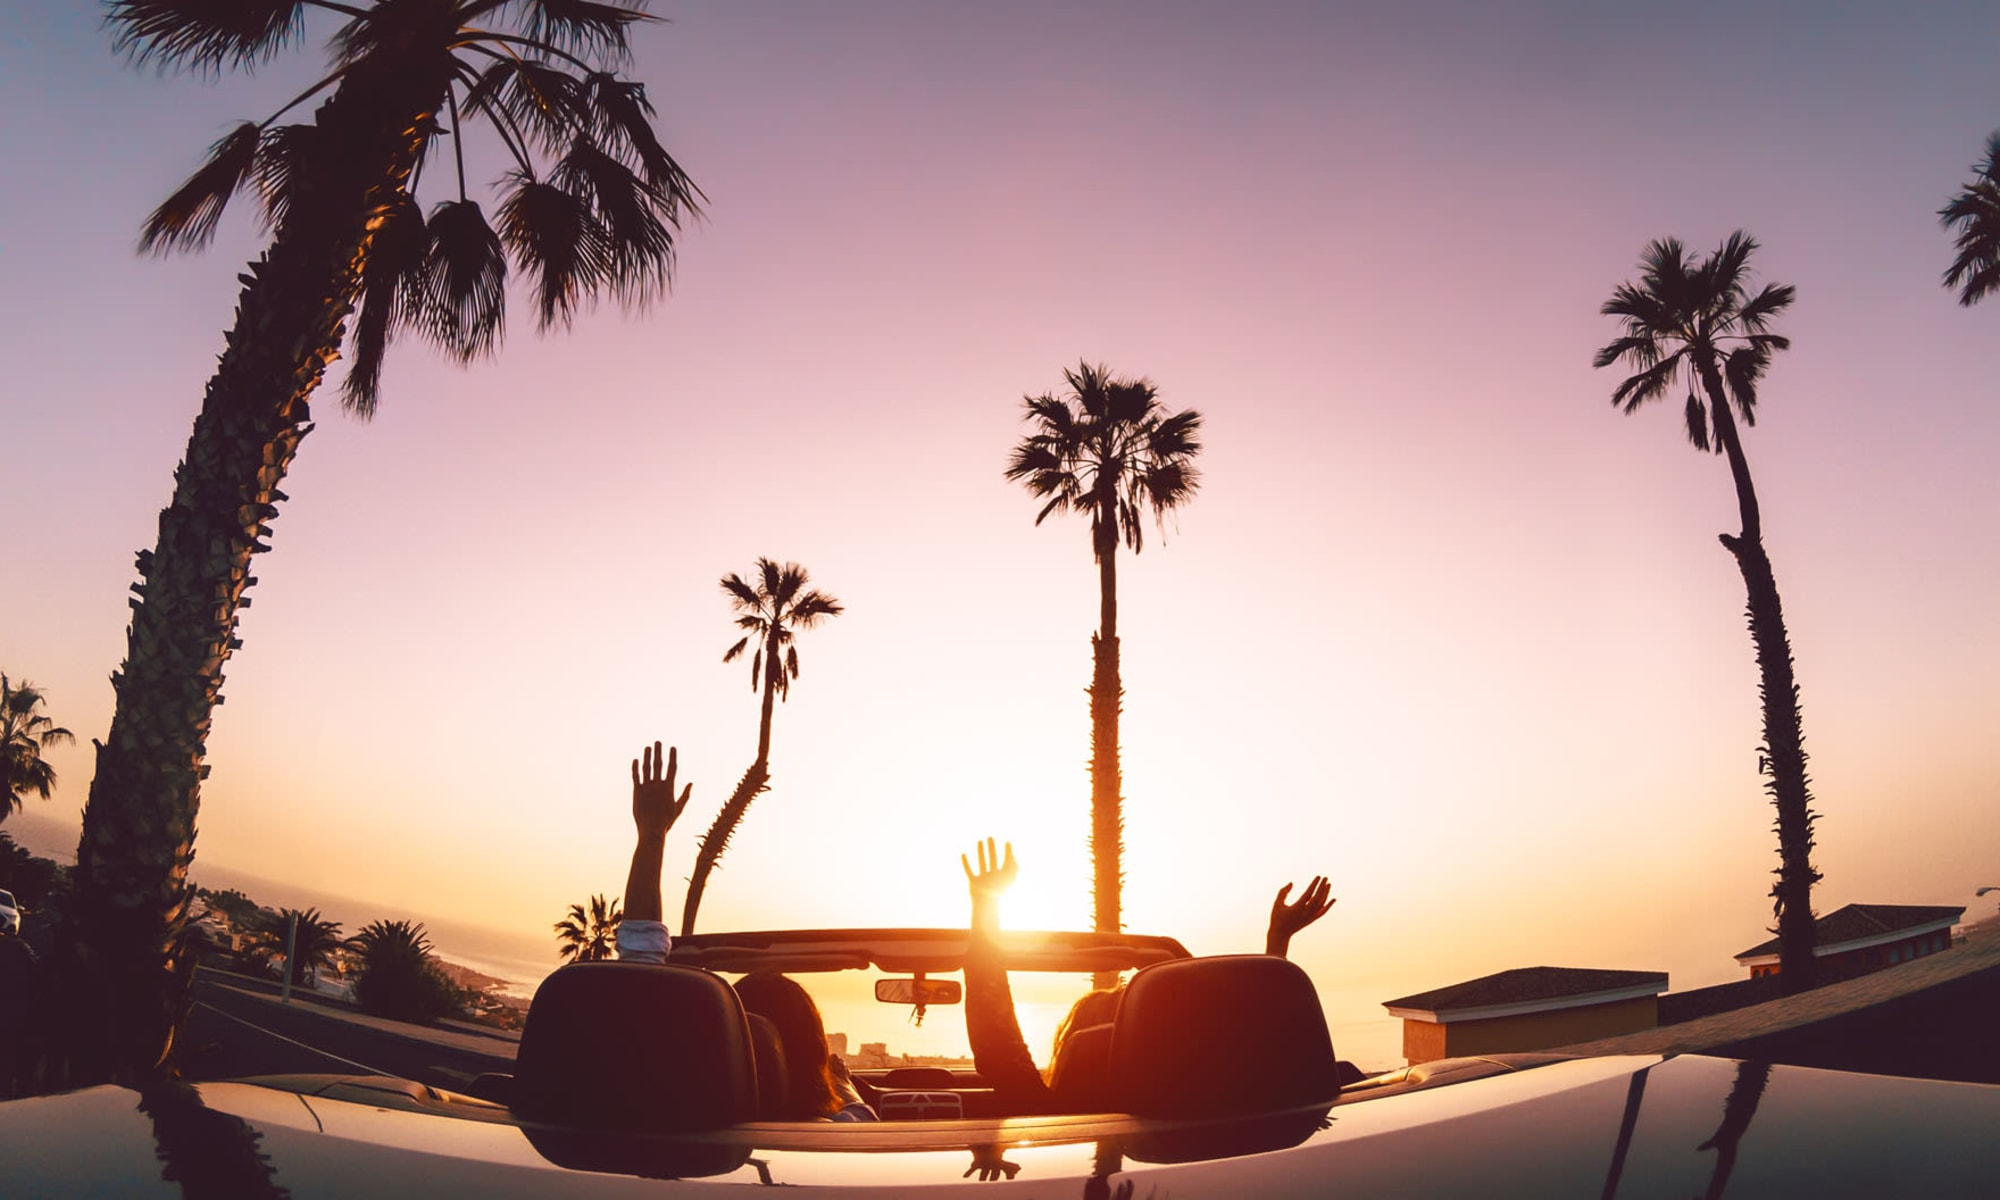 Residents parked in a convertible at the beach raising their arms to the setting sun near Sendero Huntington Beach in Huntington Beach, California